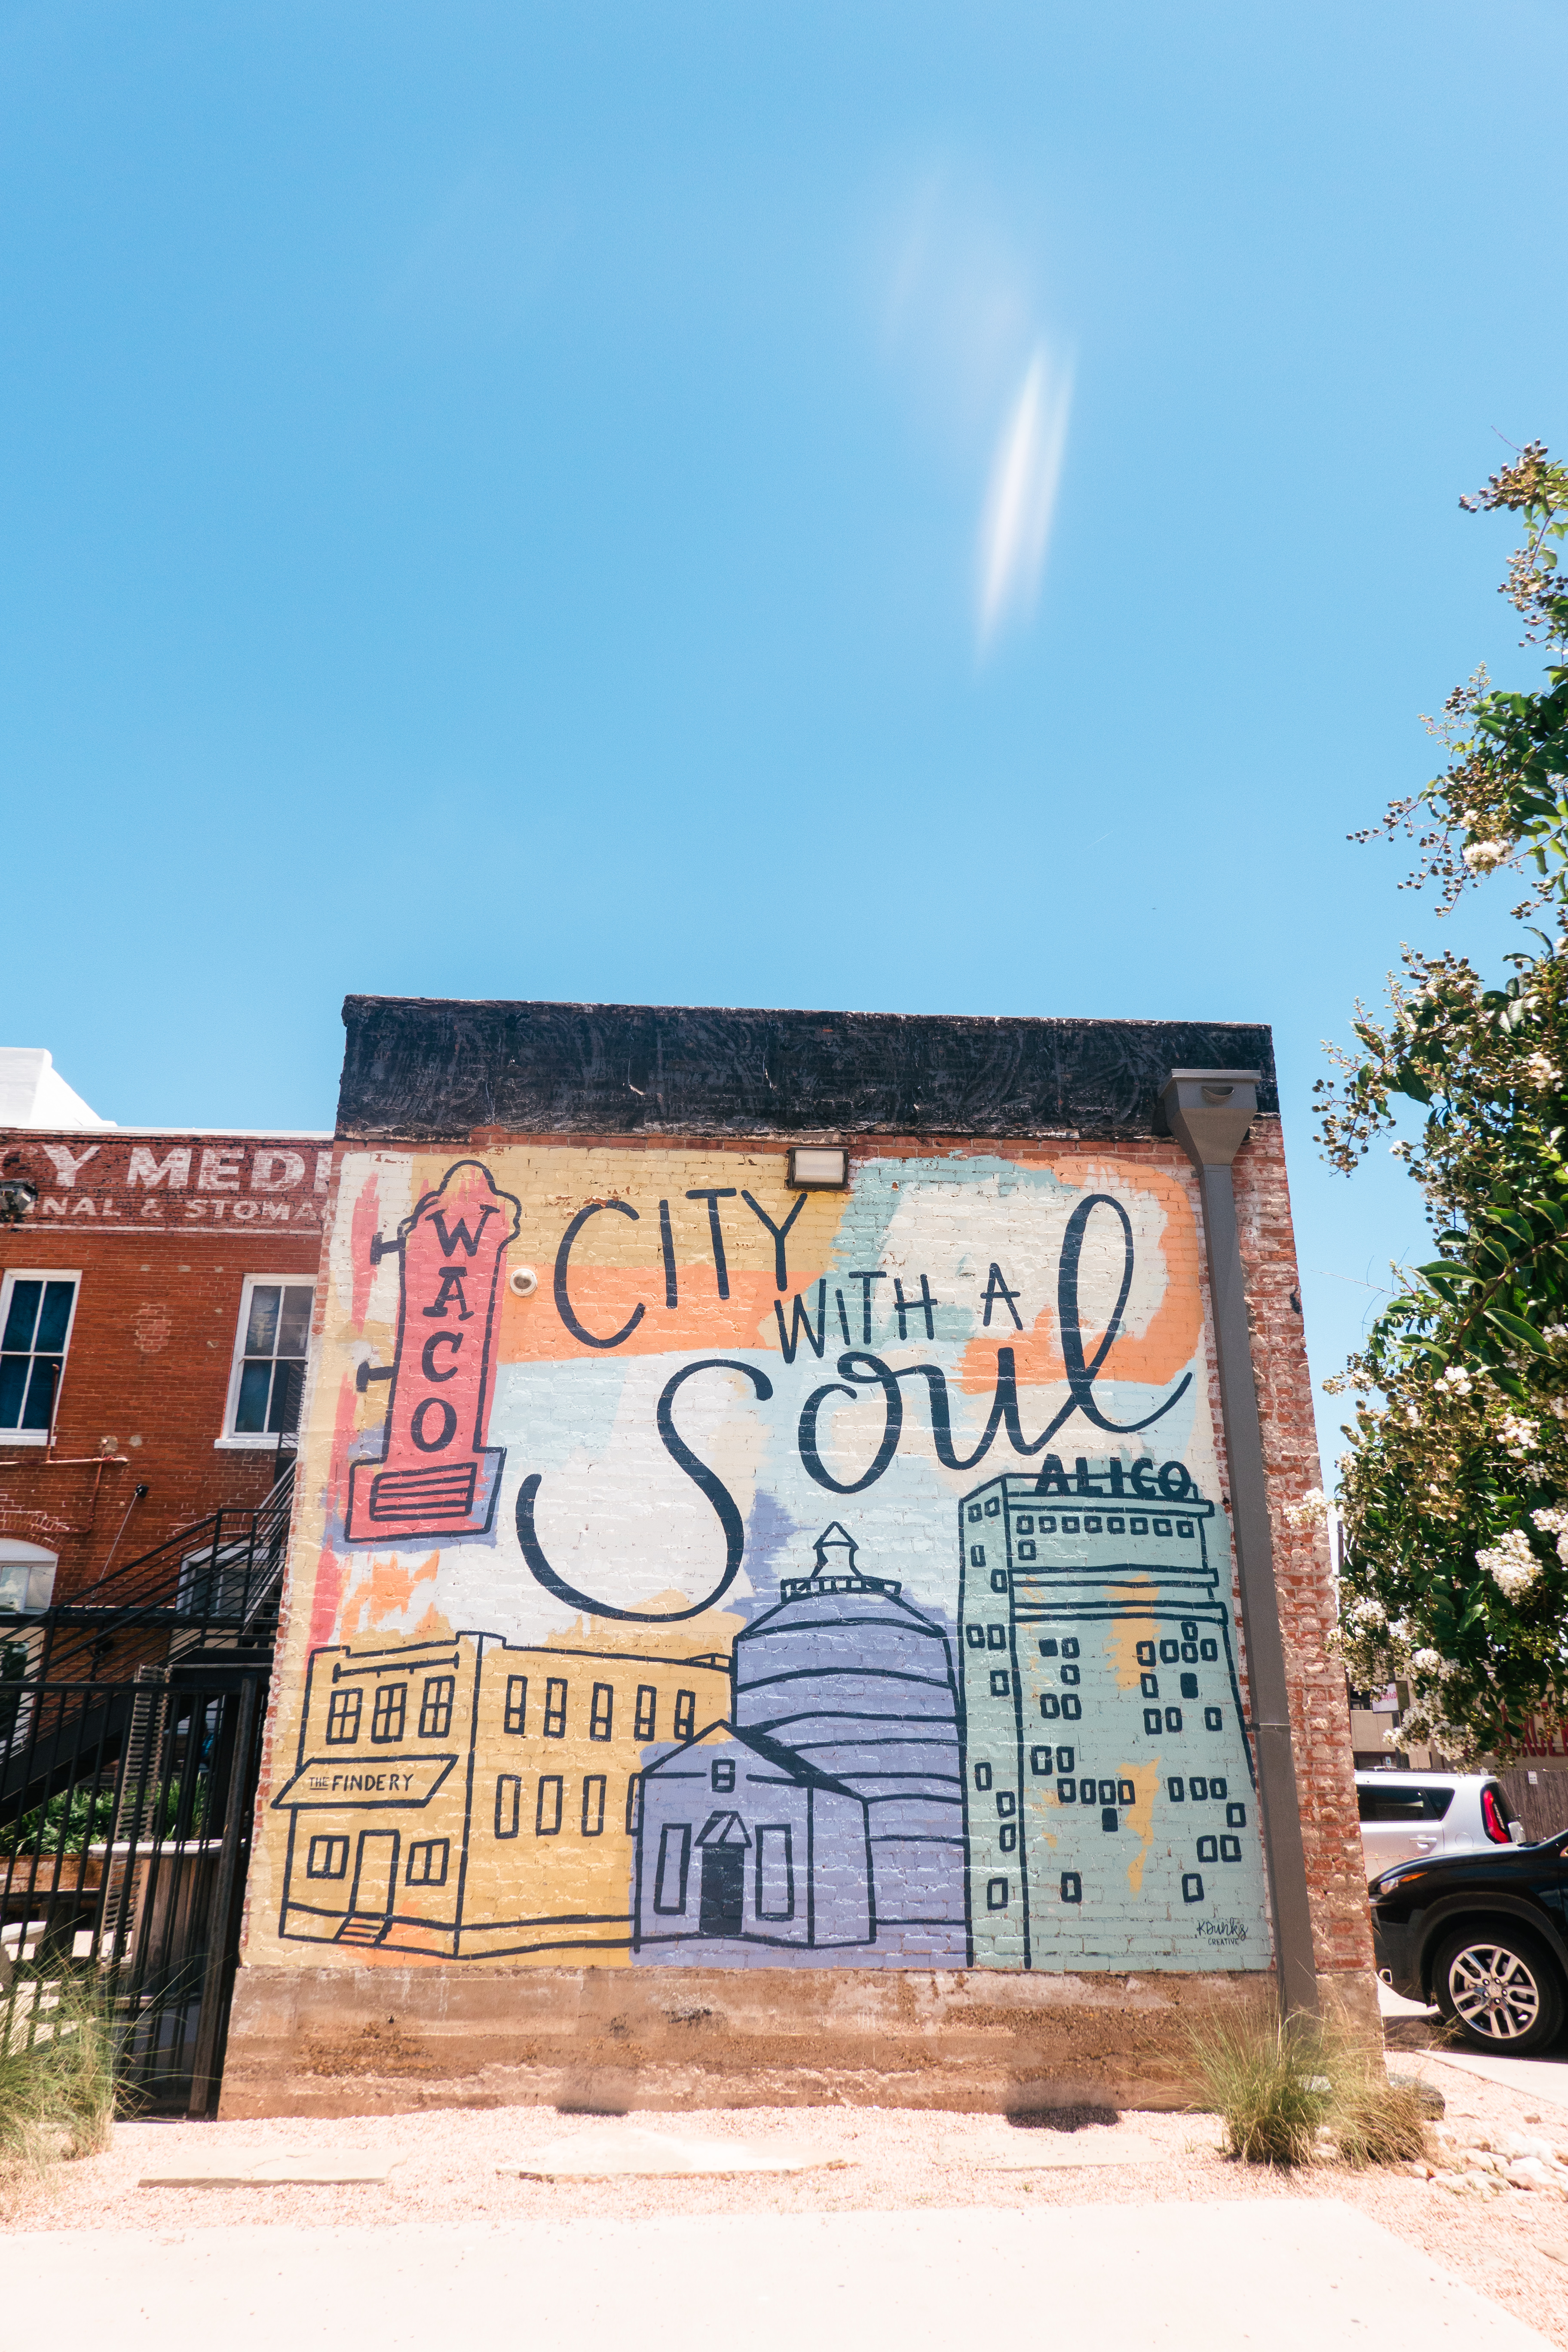 City with a Soul mural in Waco, Texas